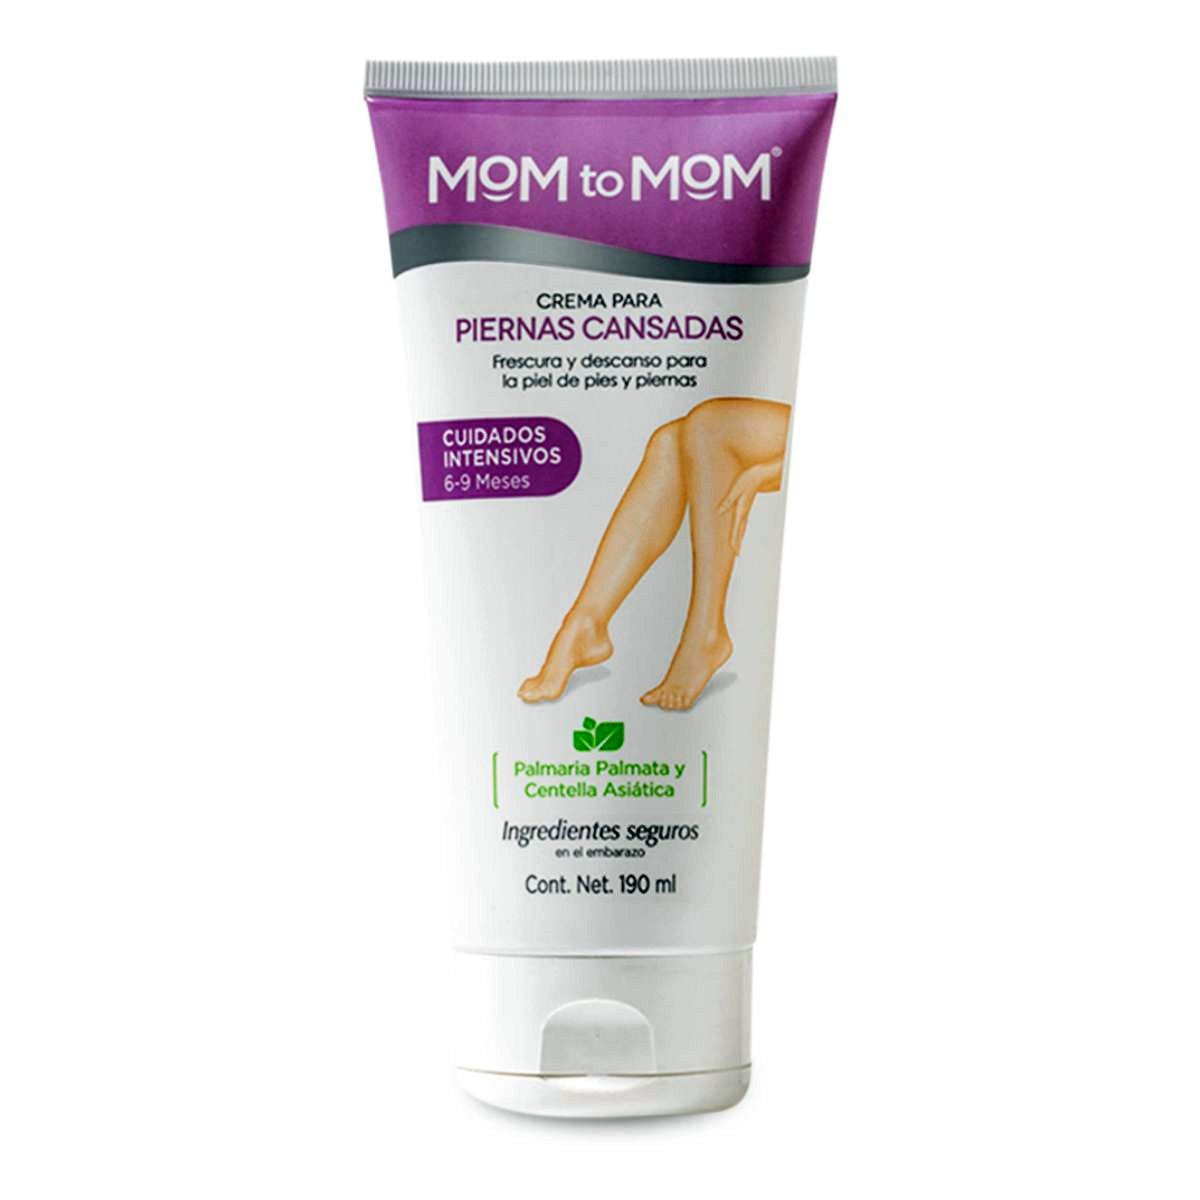 Crema para Piernas Cansadas Mom To Mom